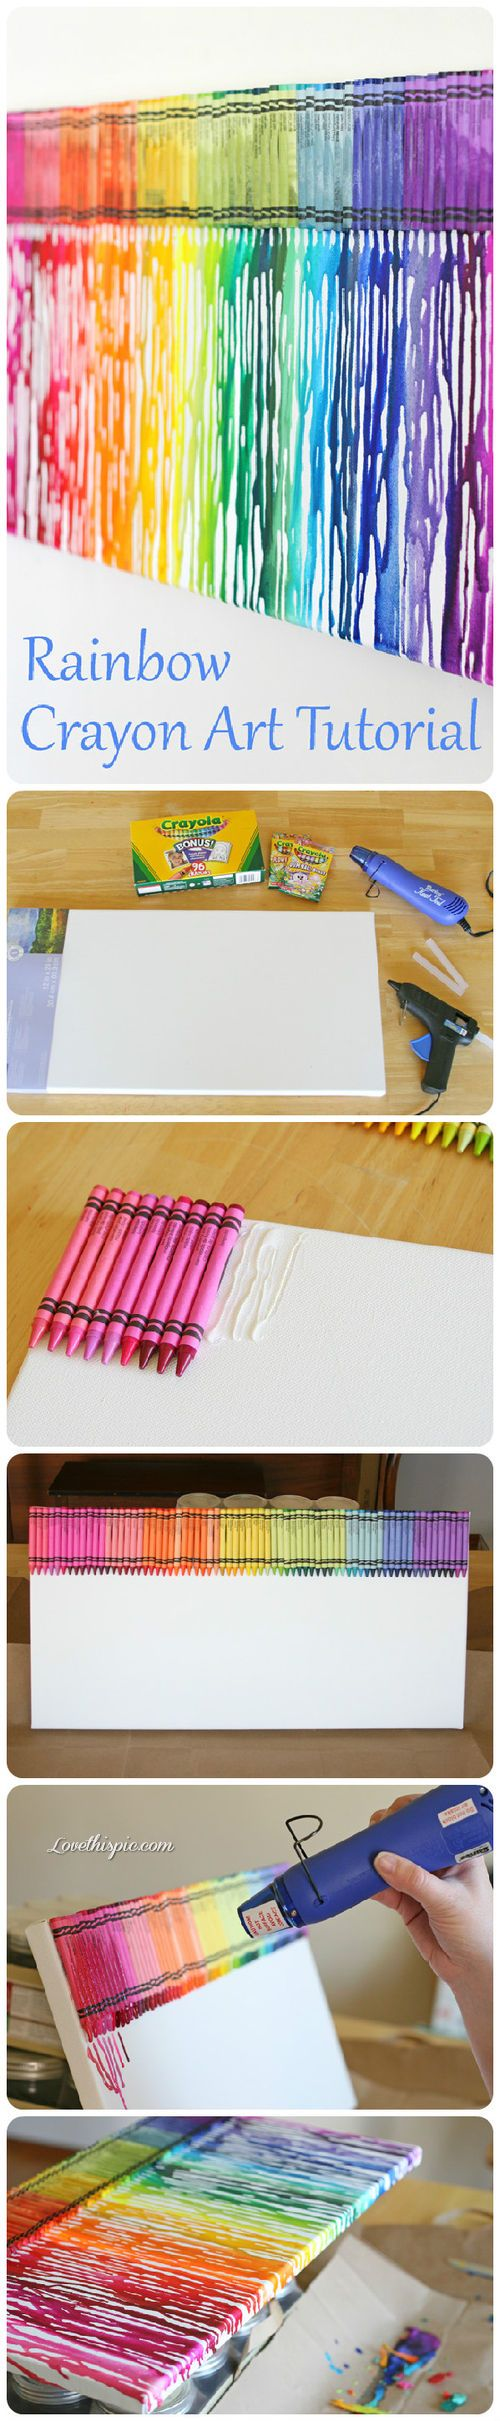 DIY :rainbow art crayon tutorial colorful crayons diy crafts home made easy crafts craft idea crafts